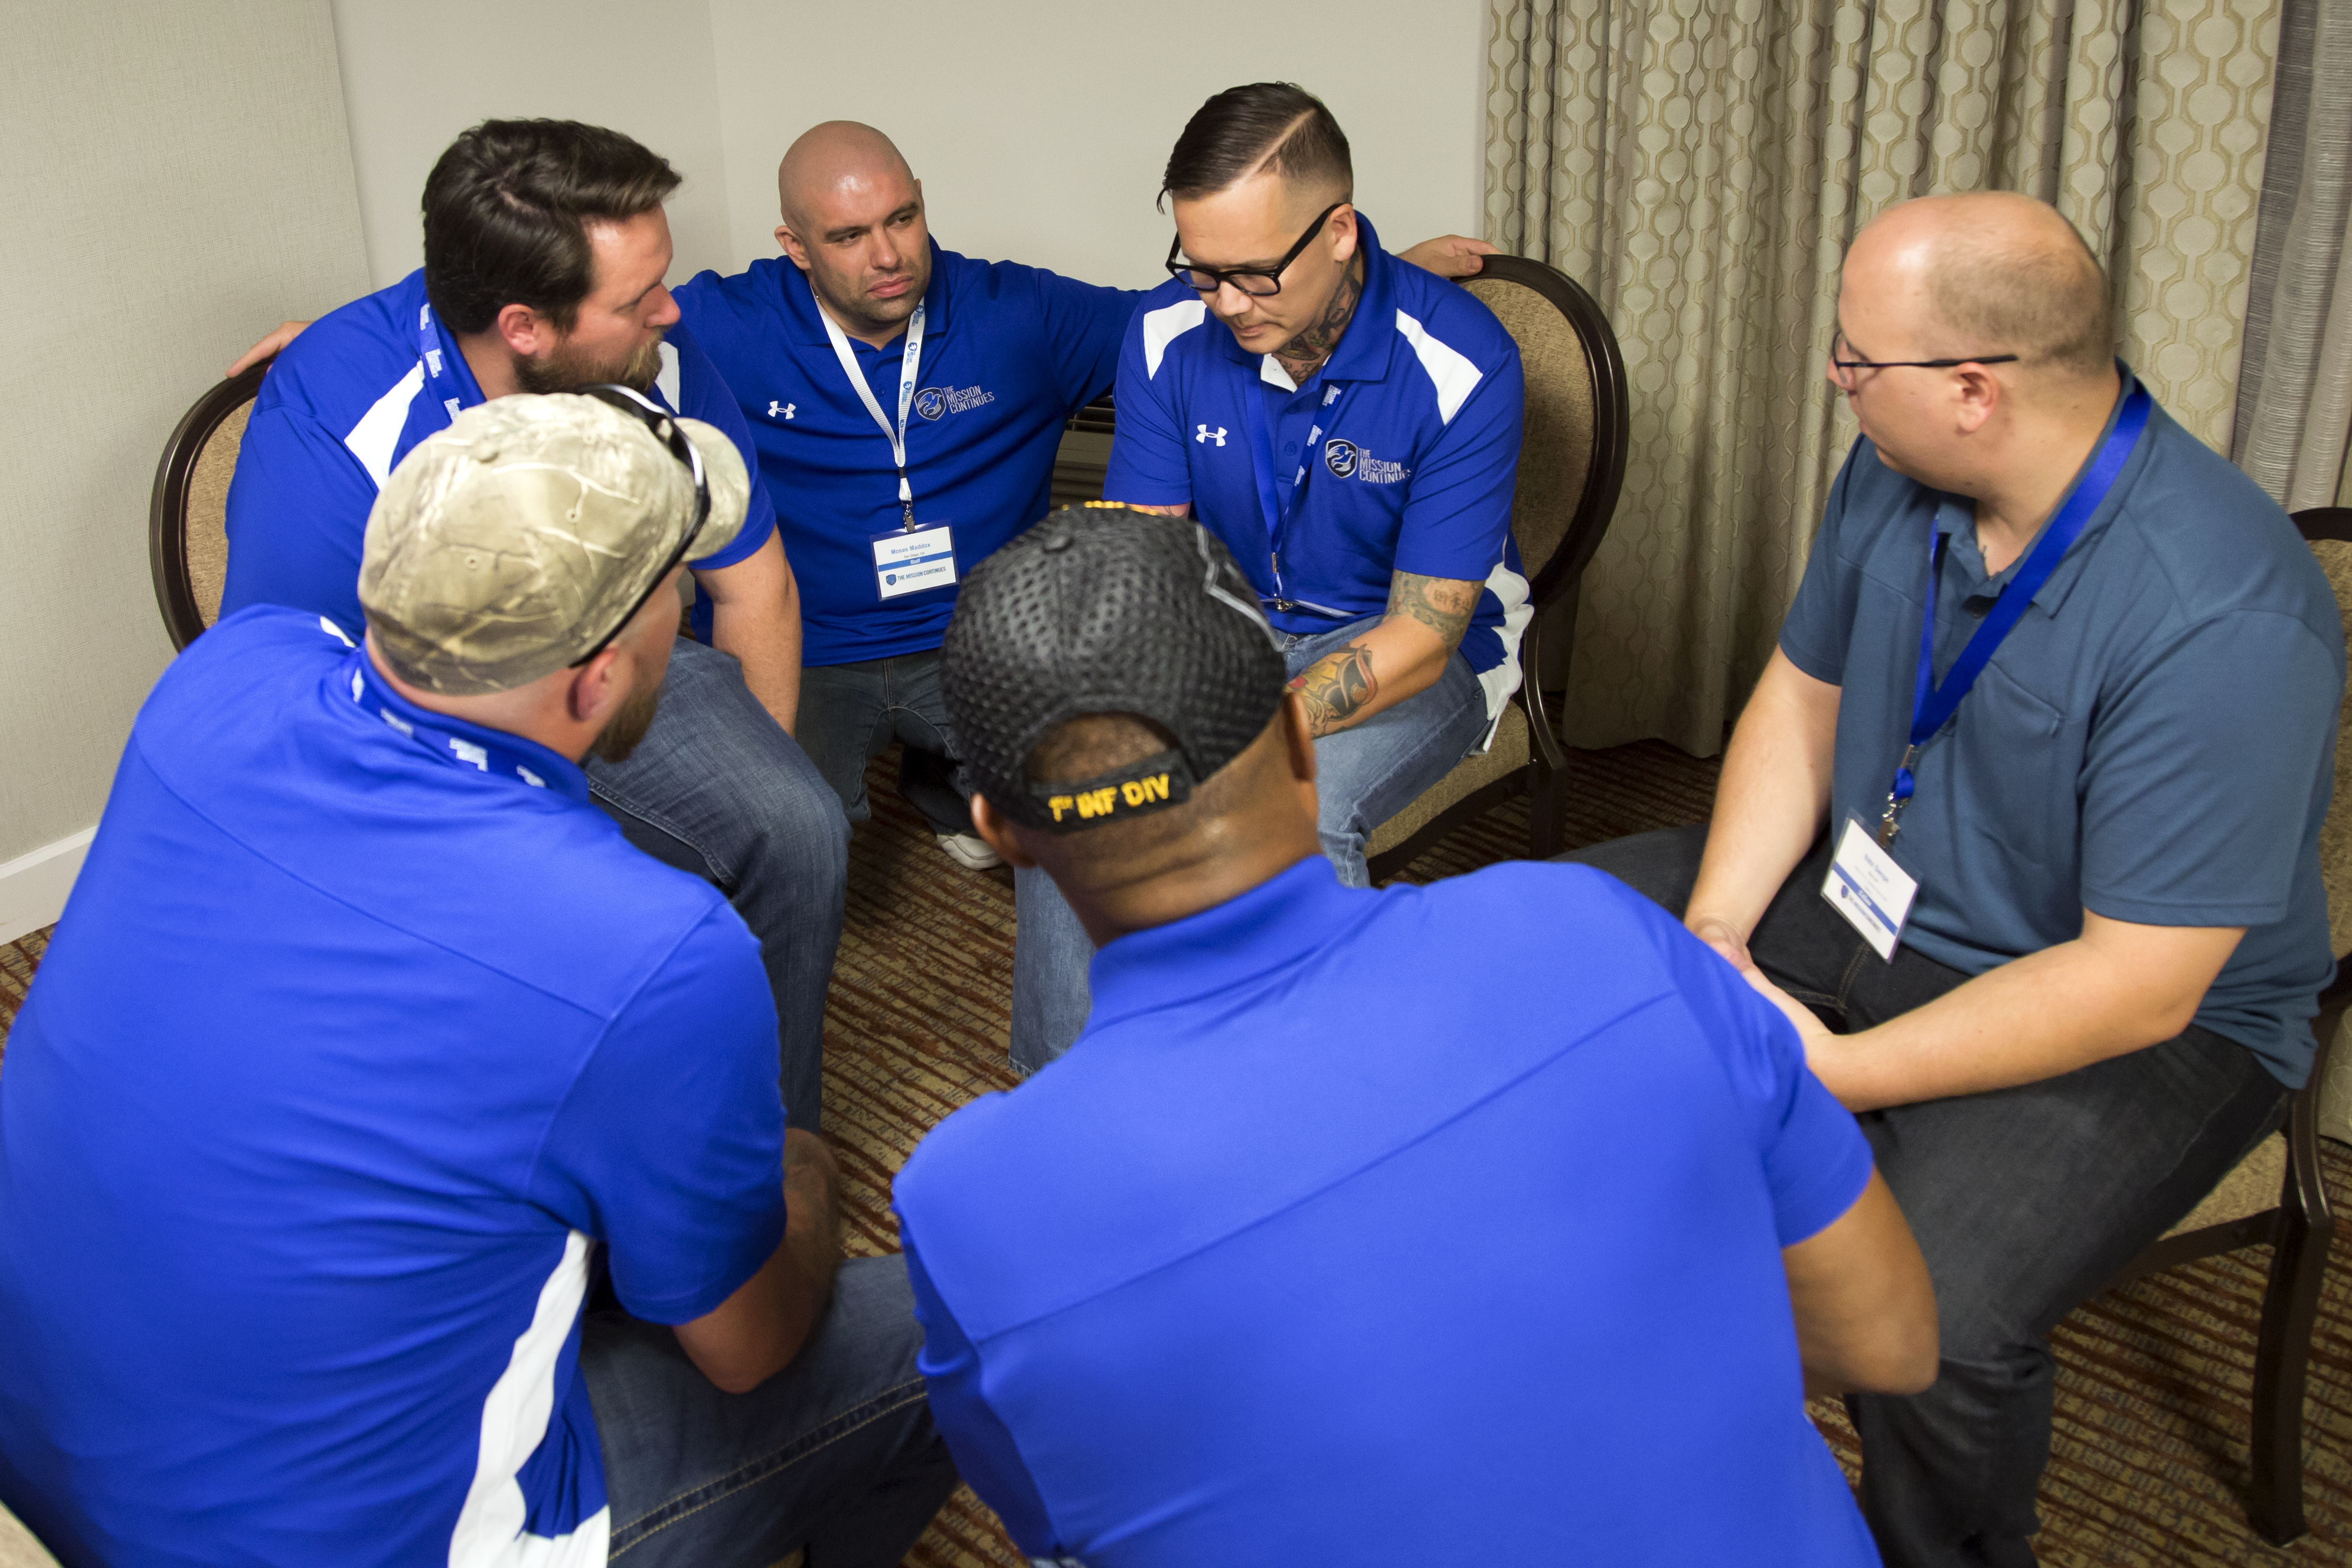 Veterans share a candid conversation during a breakout session.